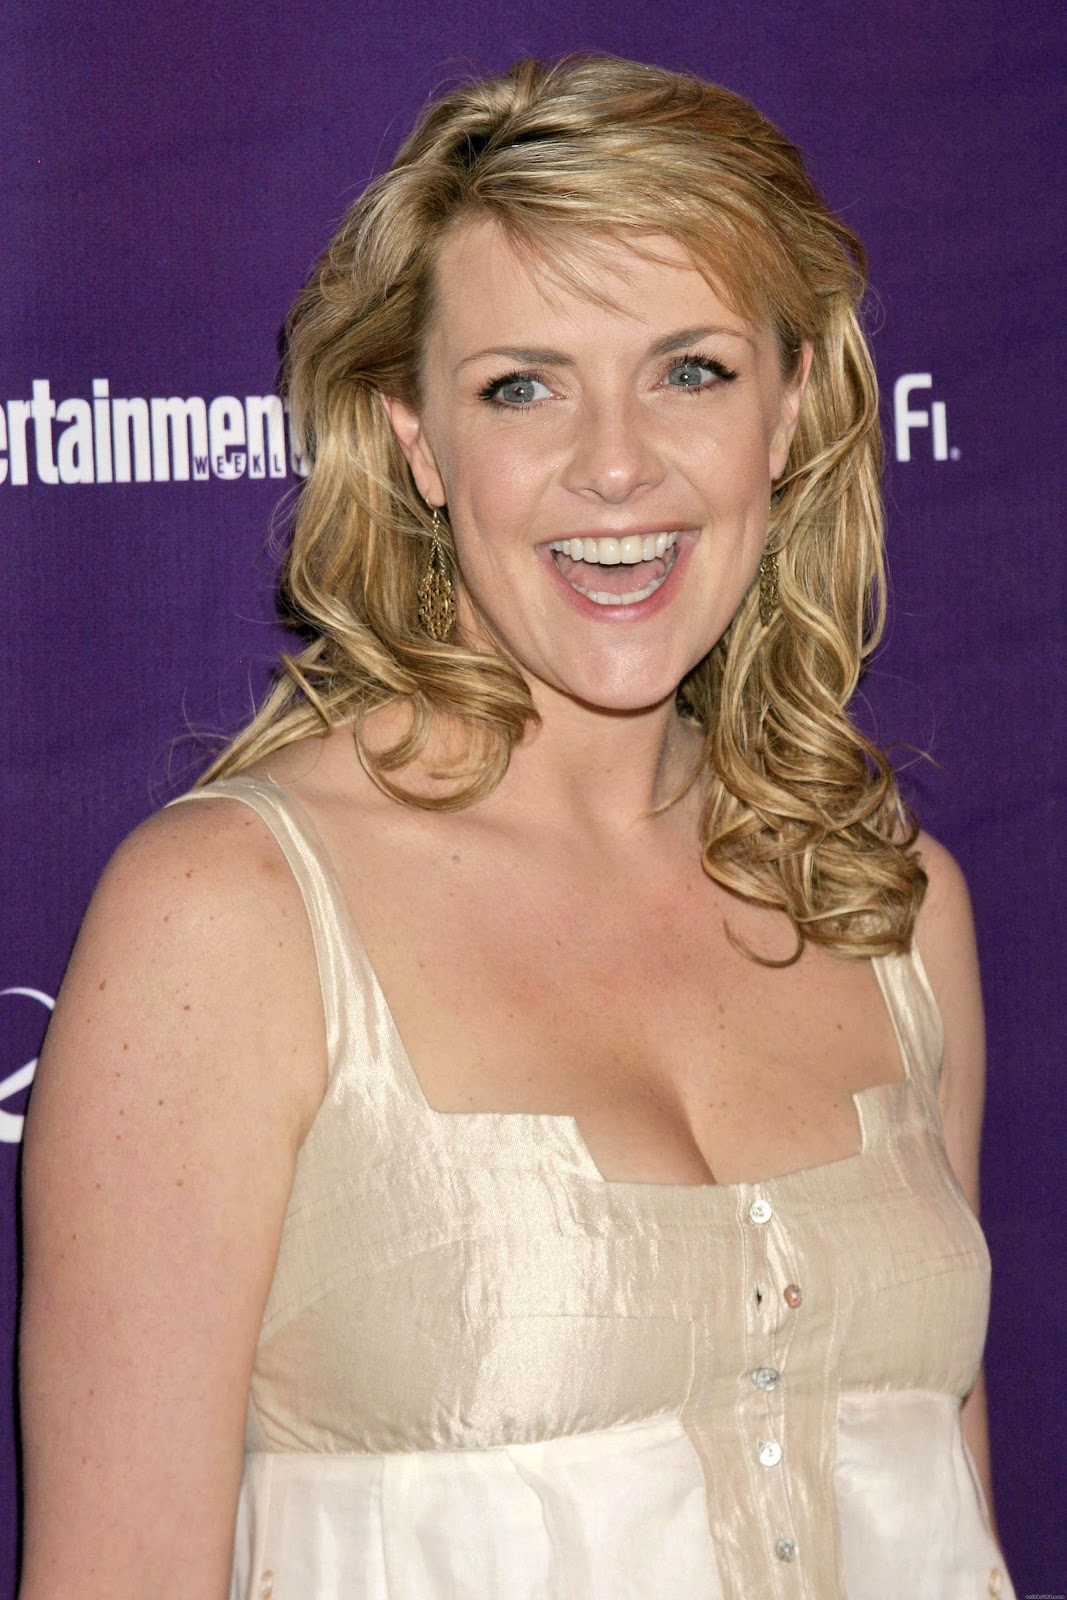 Amanda Tapping Hot hot pictures in tight short: amanda tapping cleavage